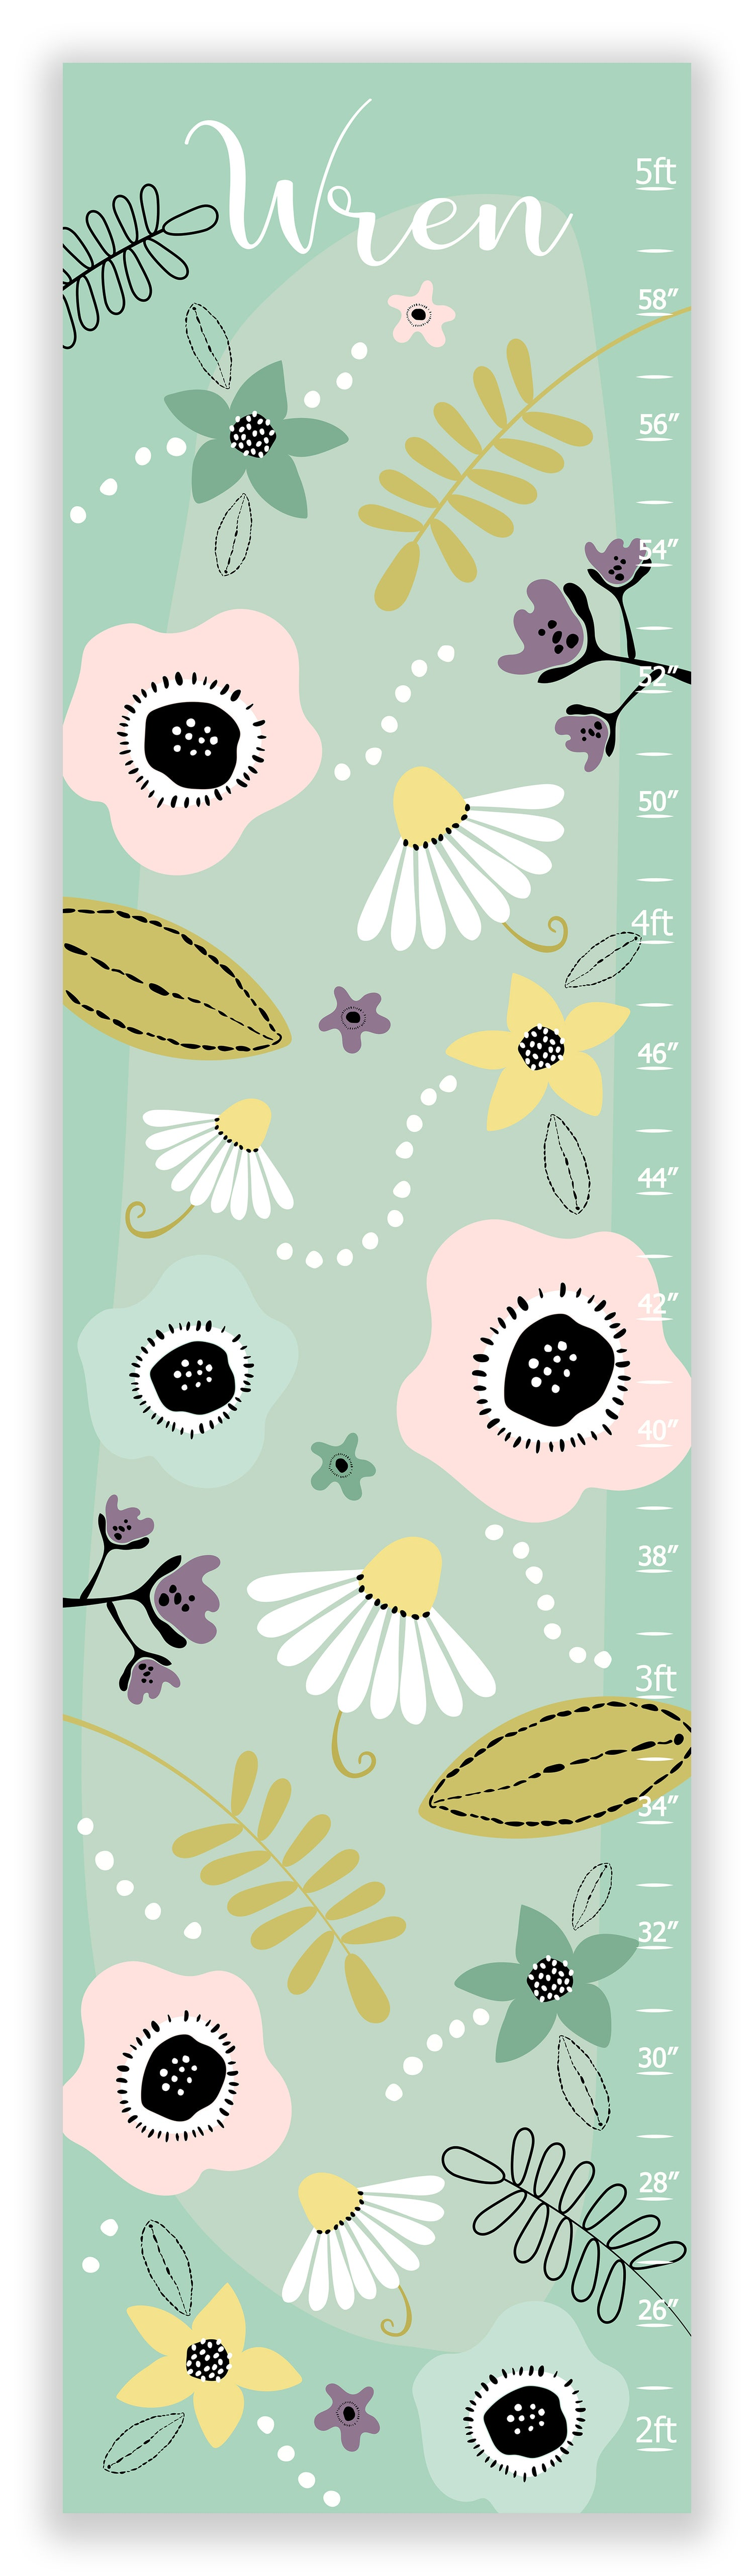 Image of Modern Boho Mint Floral Personalized Canvas Growth CHart